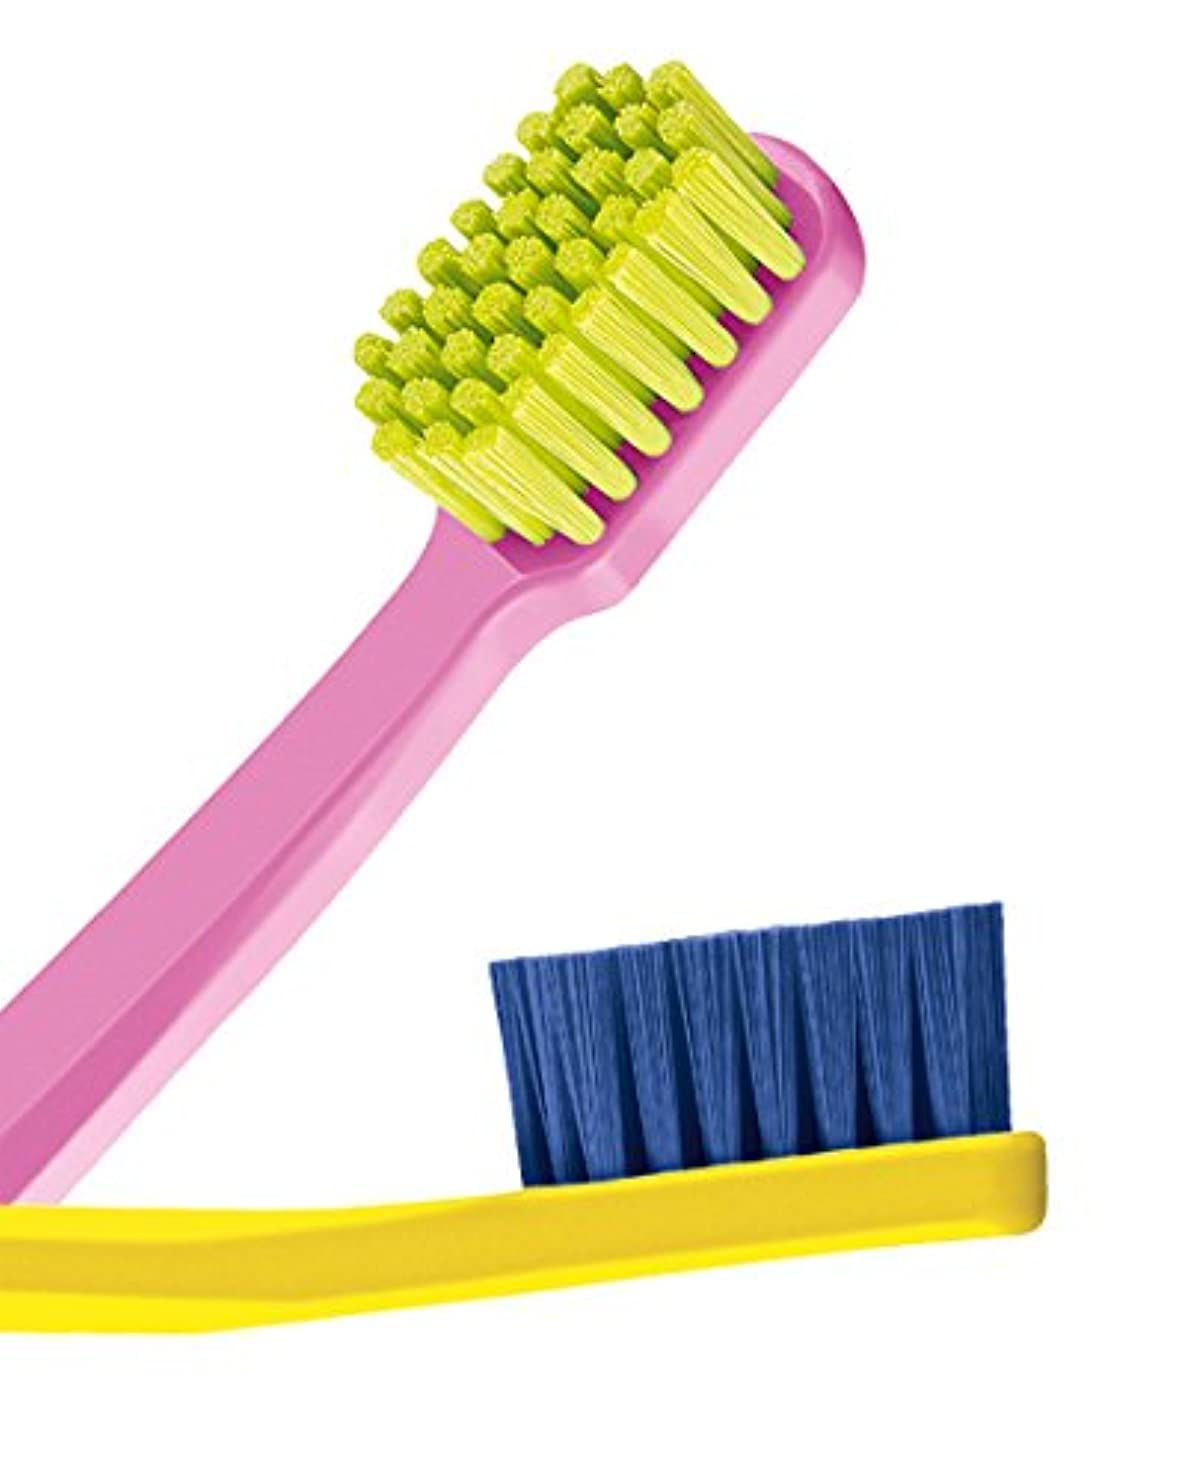 数学的な欲しいです雑品Ultra soft toothbrush, 4 brushes, Curaprox 5460. Better cleaning, softer feeling in vibrant His & Hers colours...